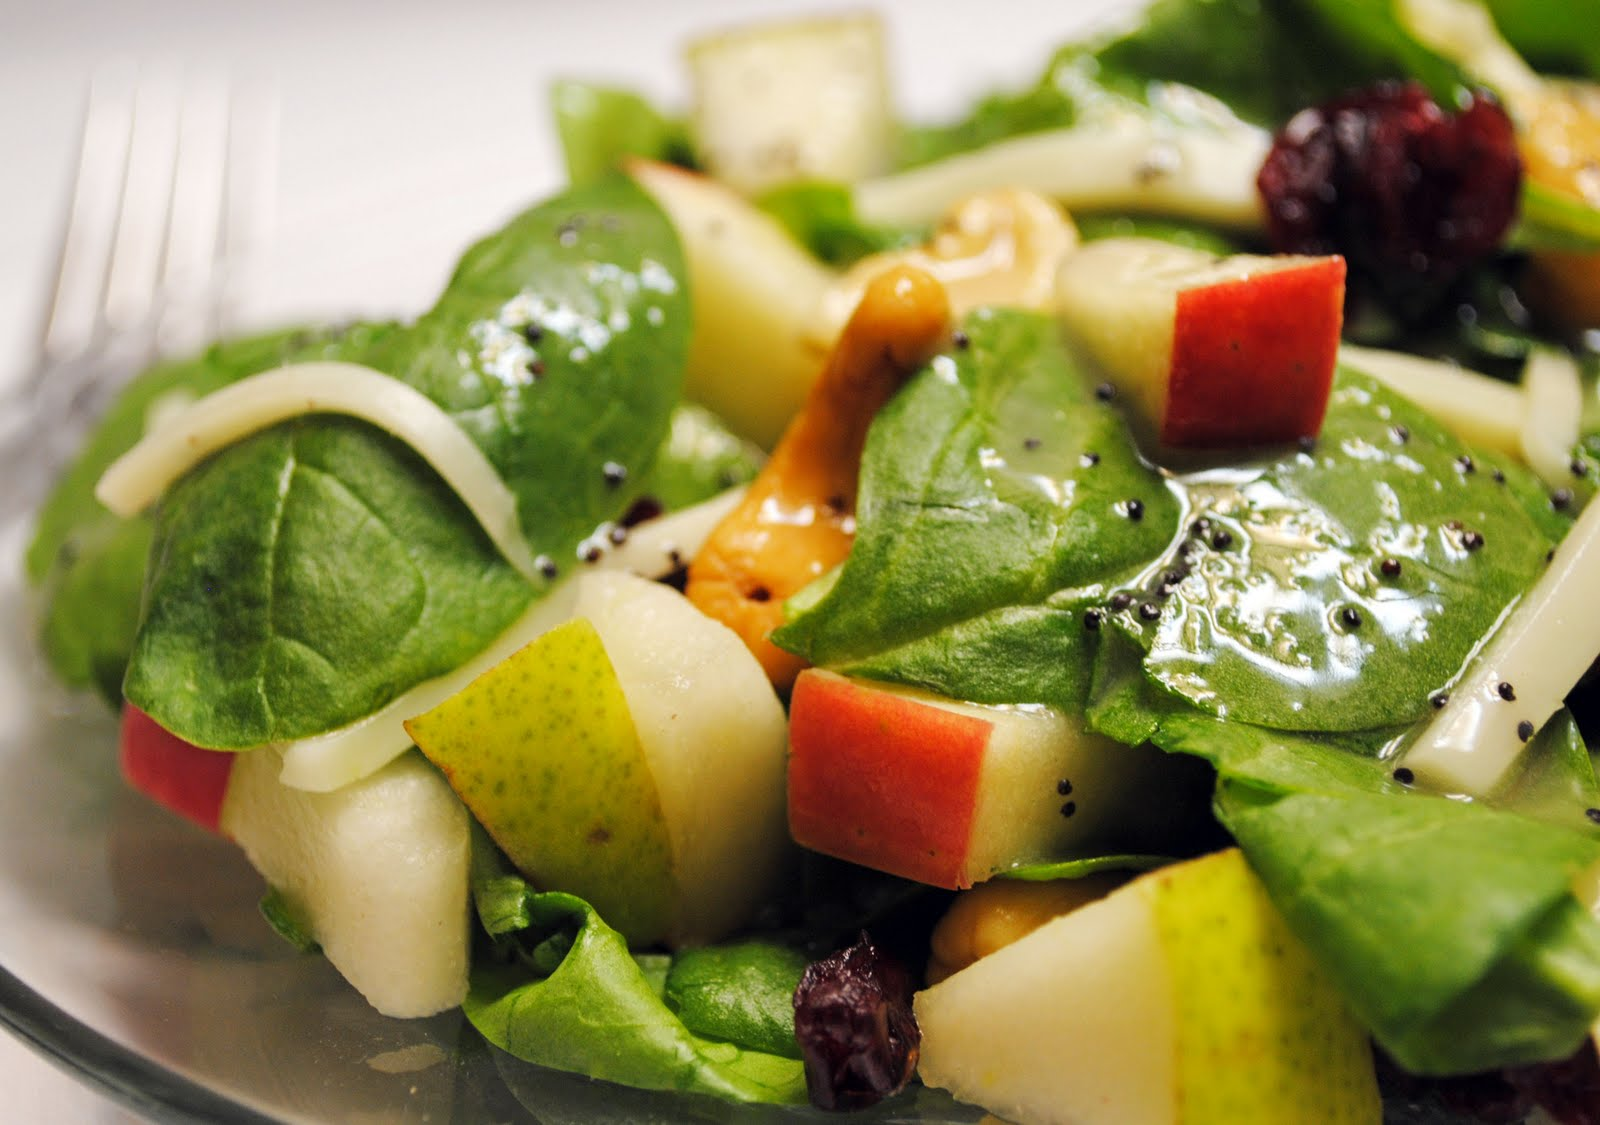 Apple Pear Salad With Lemon Poppy Seed Dressing